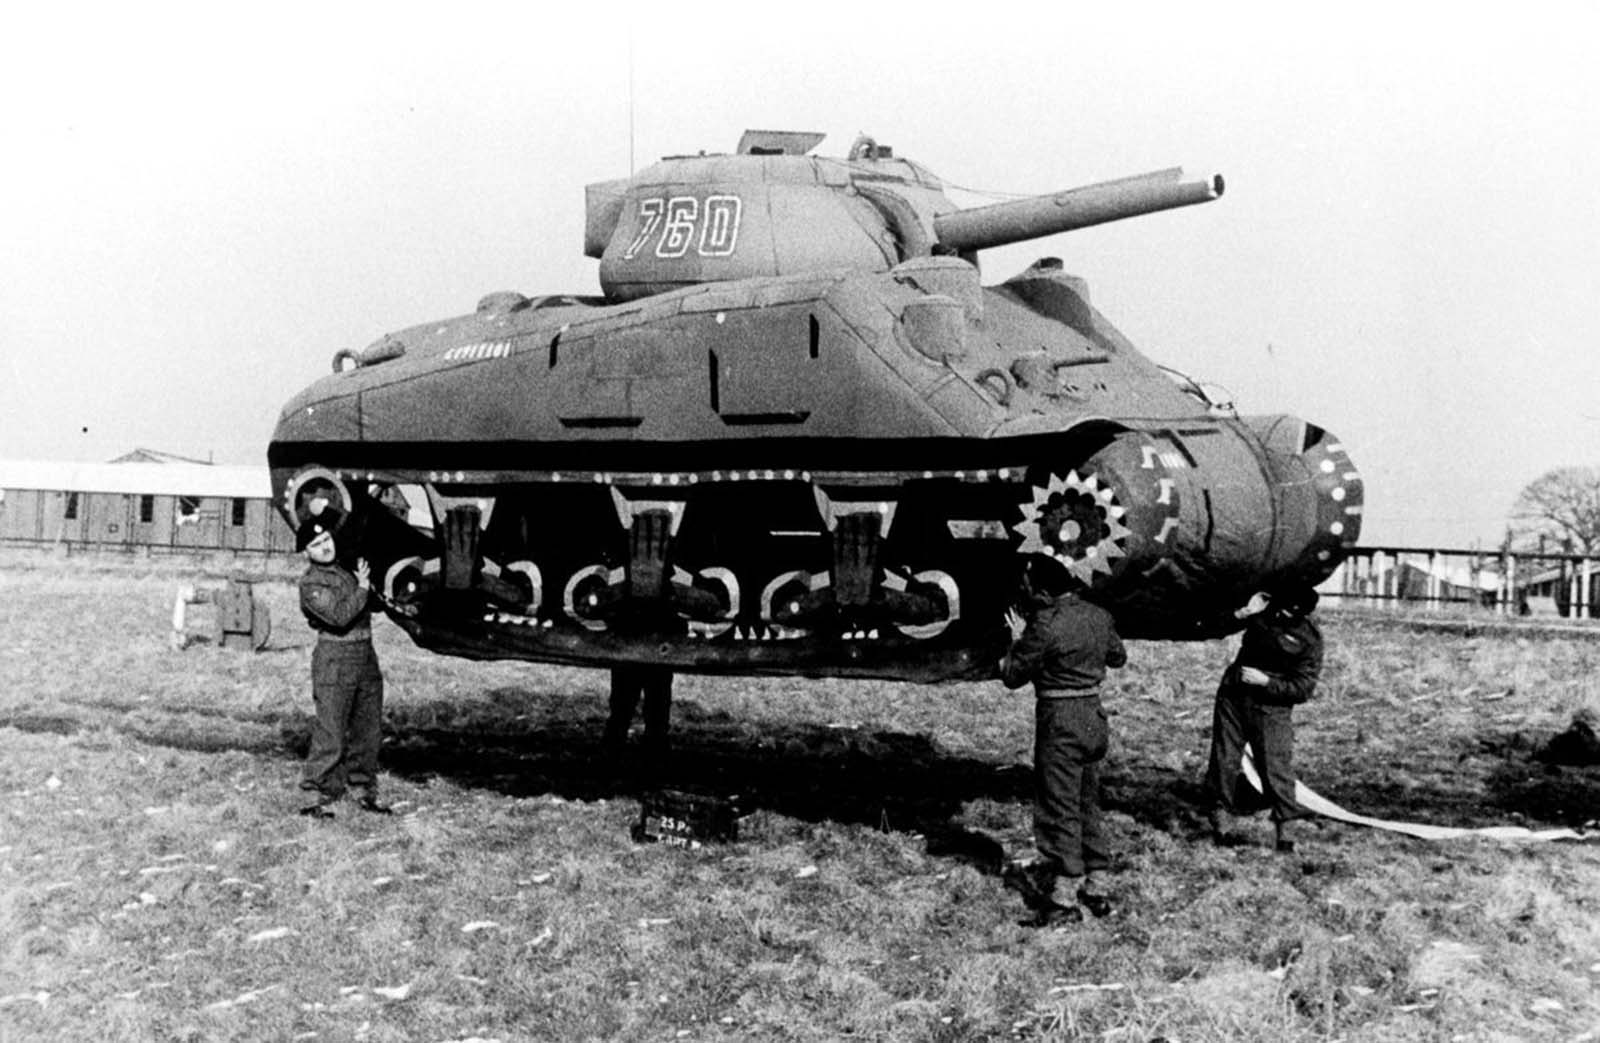 Soldiers lift up an inflatable rubber dummy tank in England. 1939.